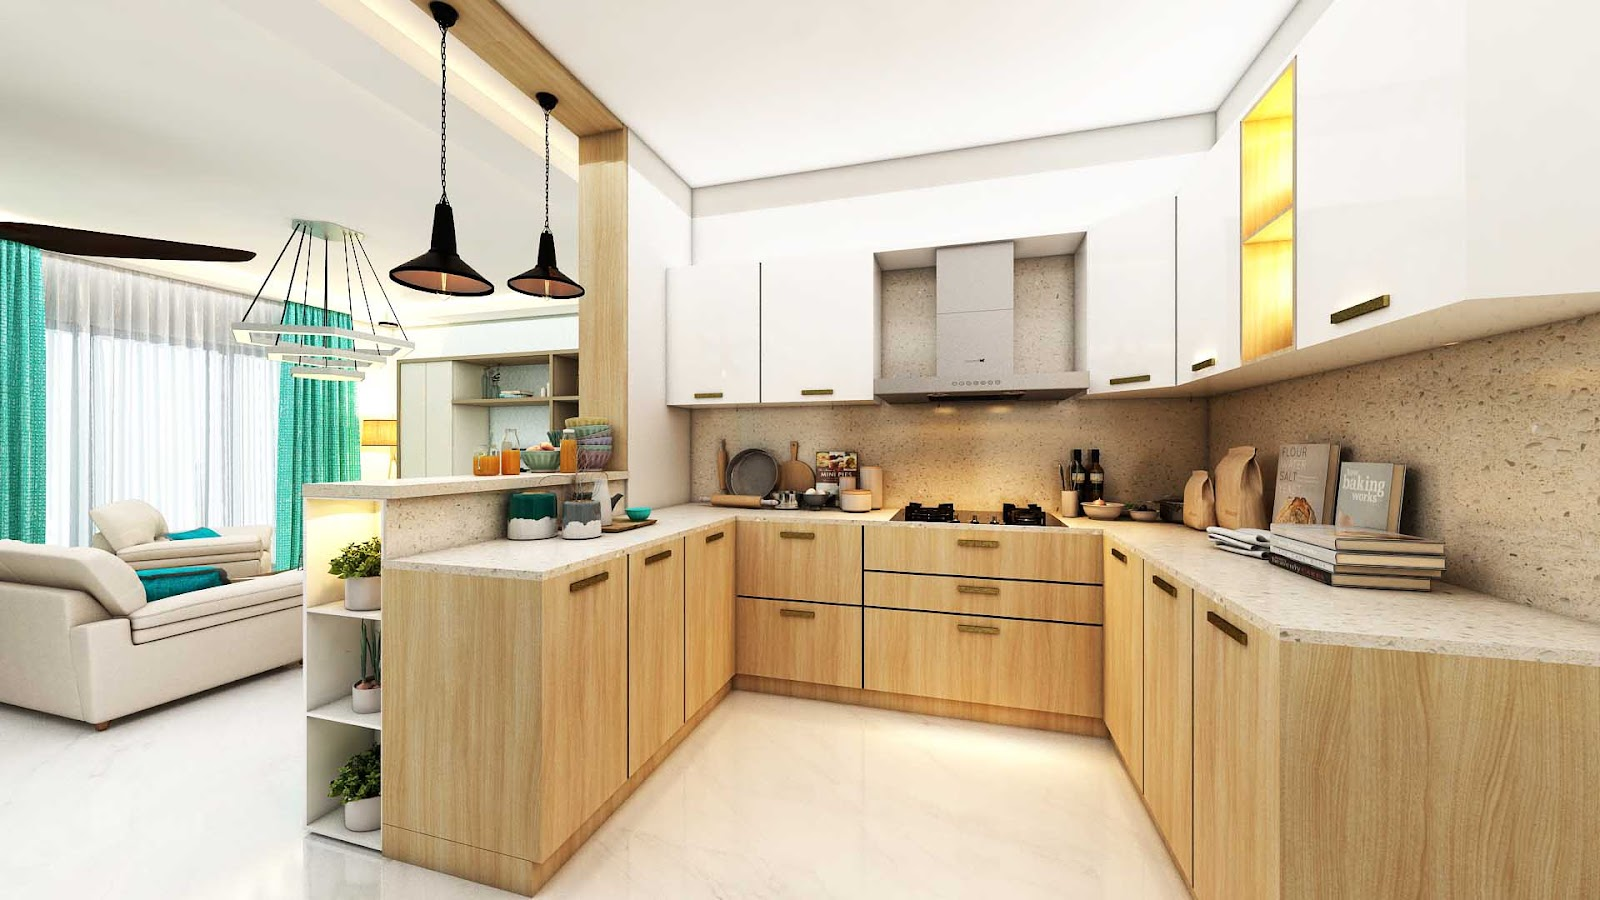 U-Shaped kitchen layout design